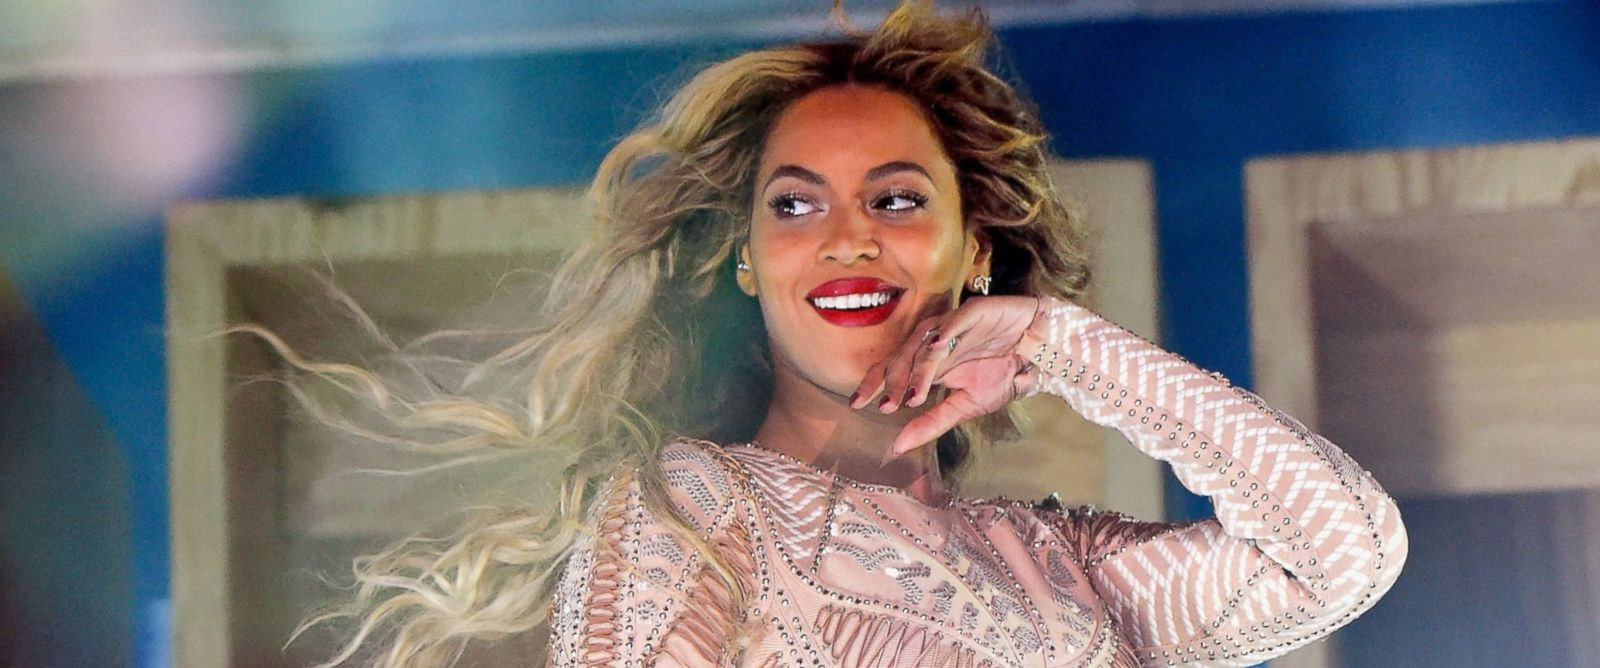 PHOTO: Beyonce performs onstage during the 2015 Budweiser Made in America Festival at Benjamin Franklin Parkway, Sept. 5, 2015 in Philadelphia.